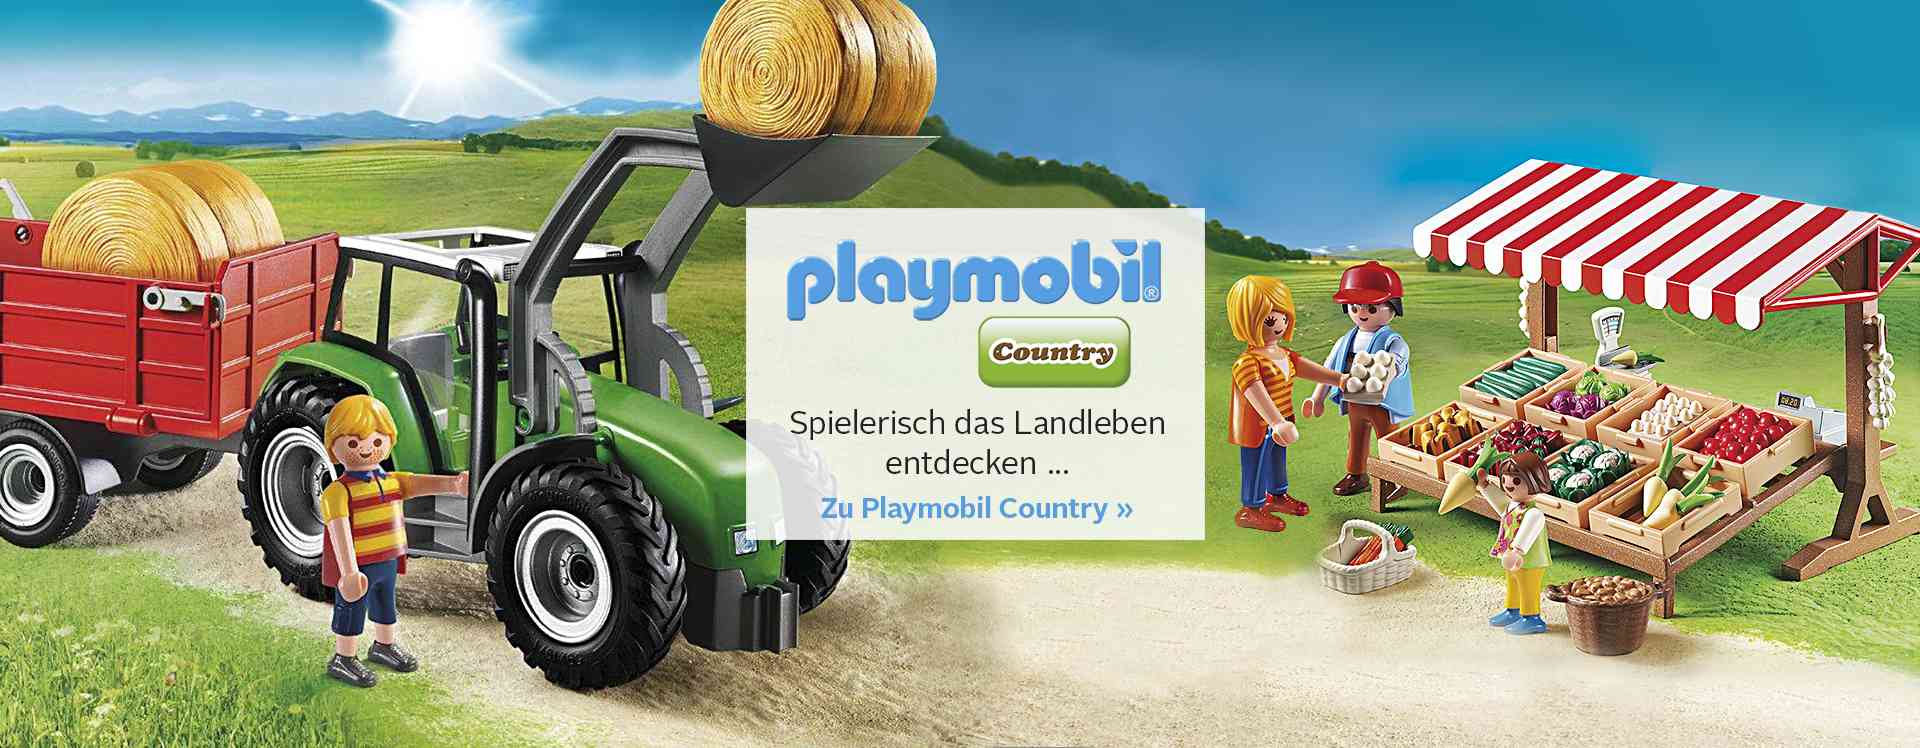 playmobil spielzeug online kaufen otto. Black Bedroom Furniture Sets. Home Design Ideas